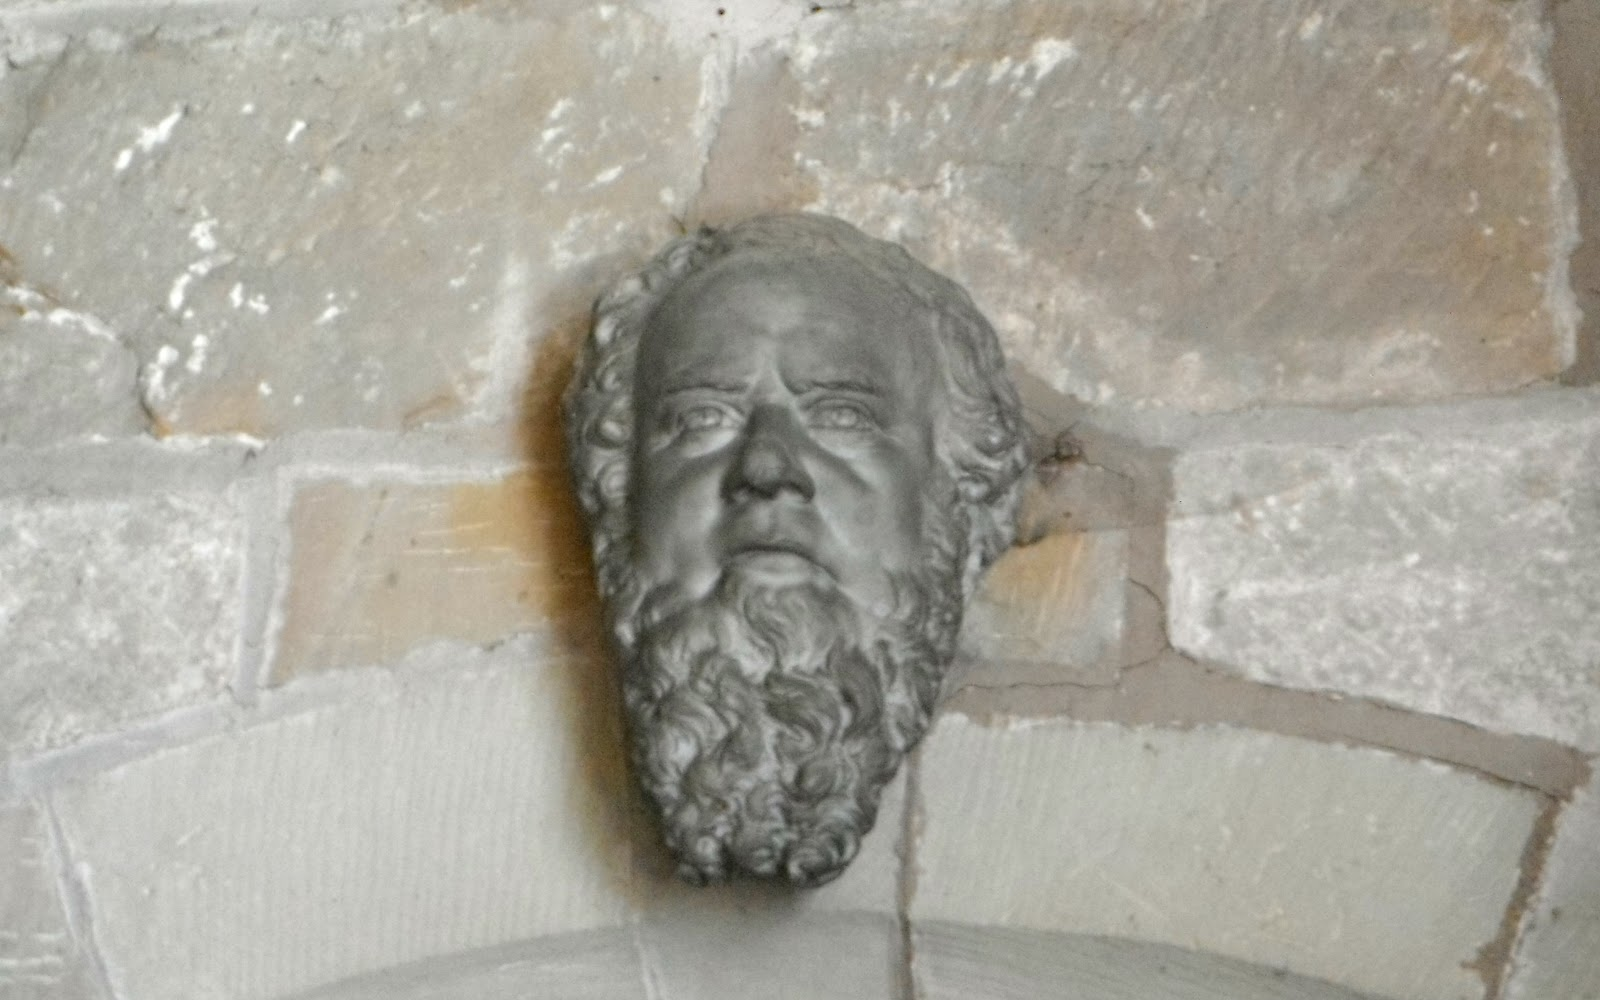 Stone carving in Seighford Church